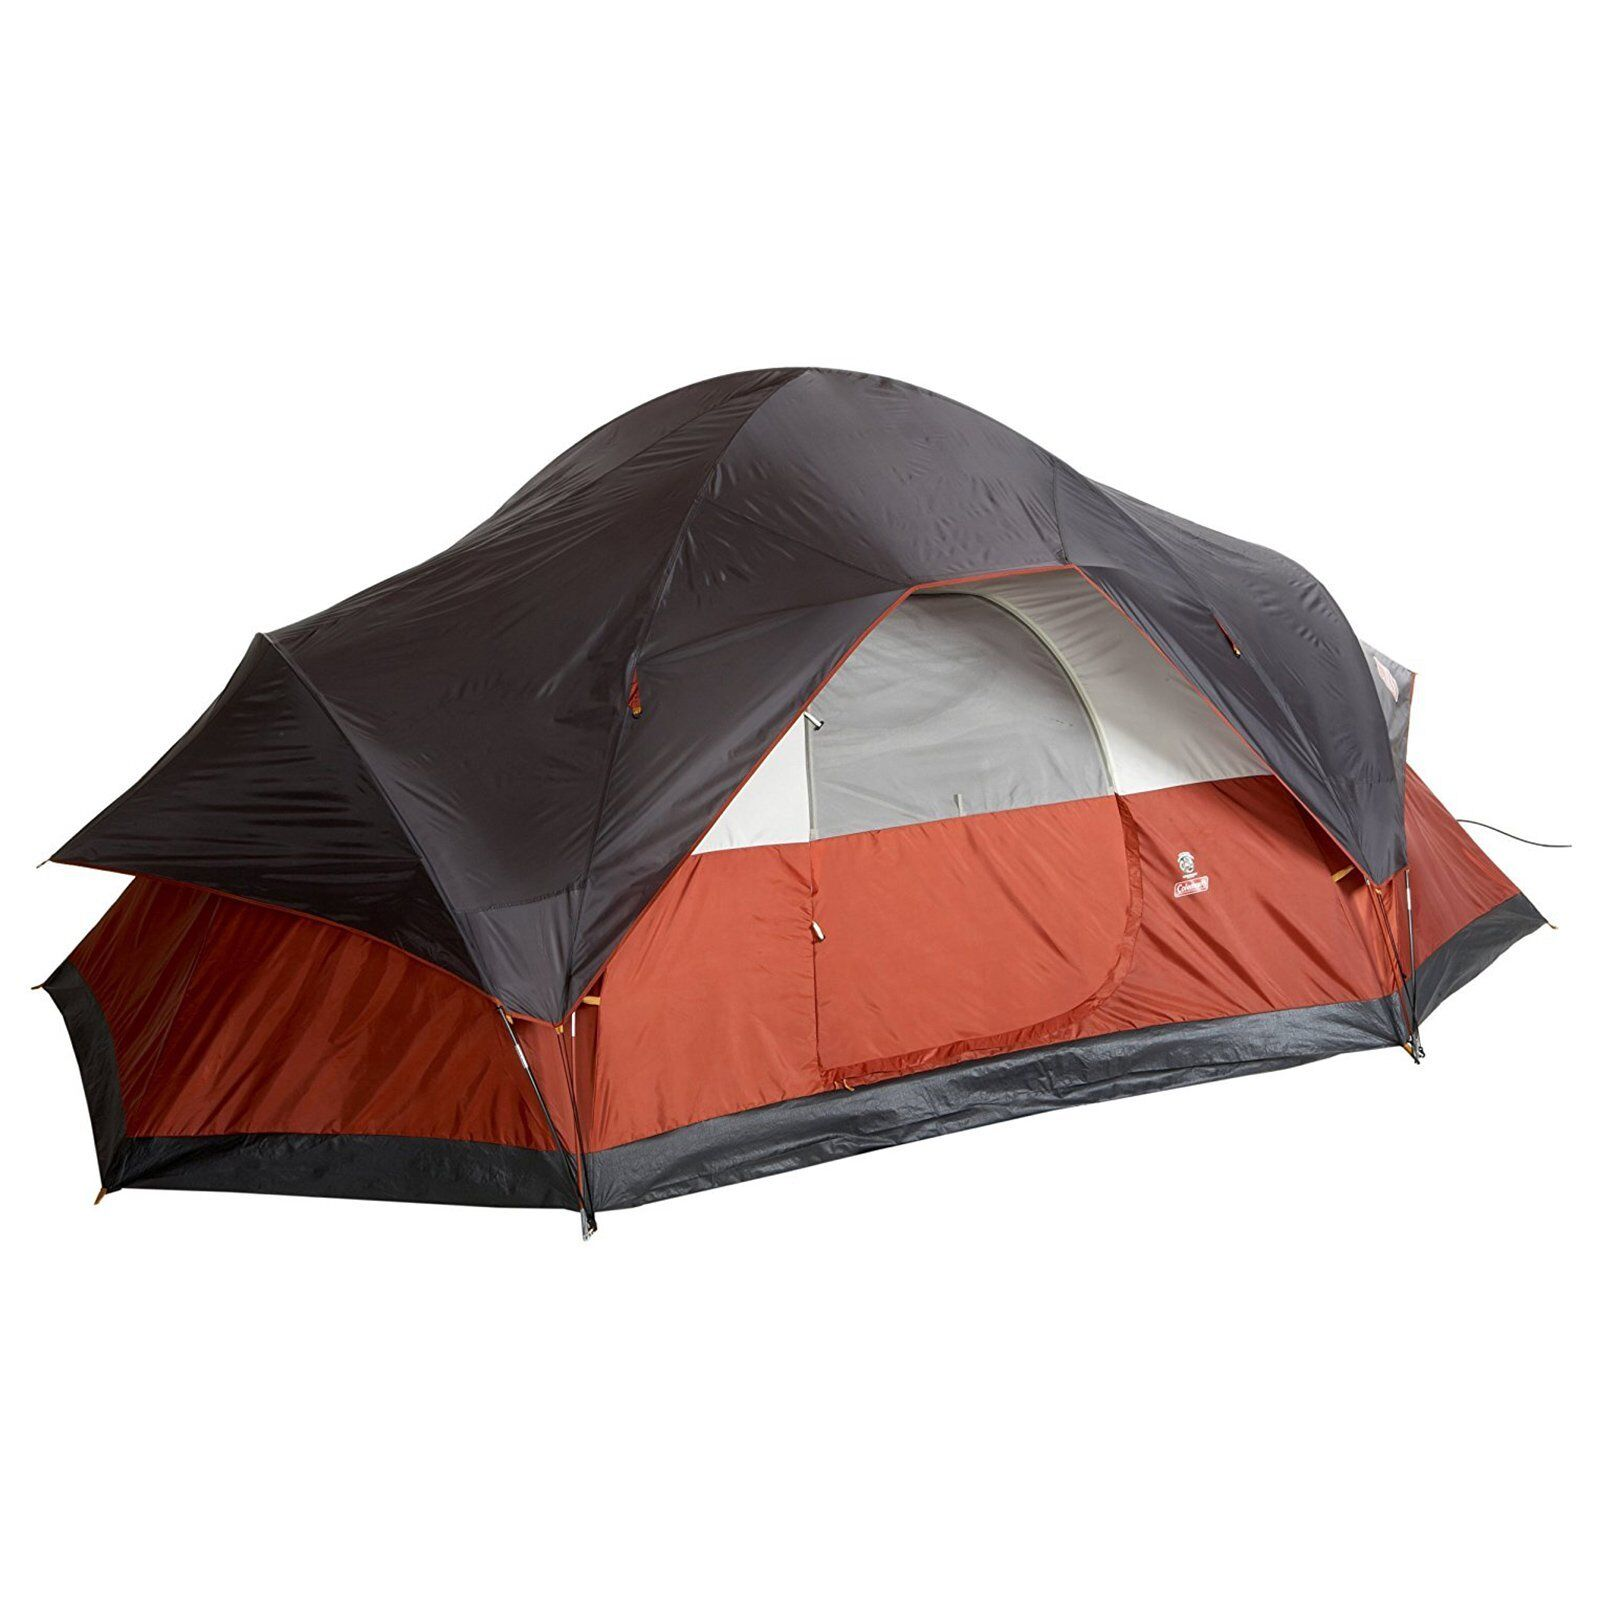 Coleman Red Canyon 8 Person 17 x 10 Foot Outdoor C&ing Large Tent  sc 1 st  eBay & 8 Person Tent | eBay